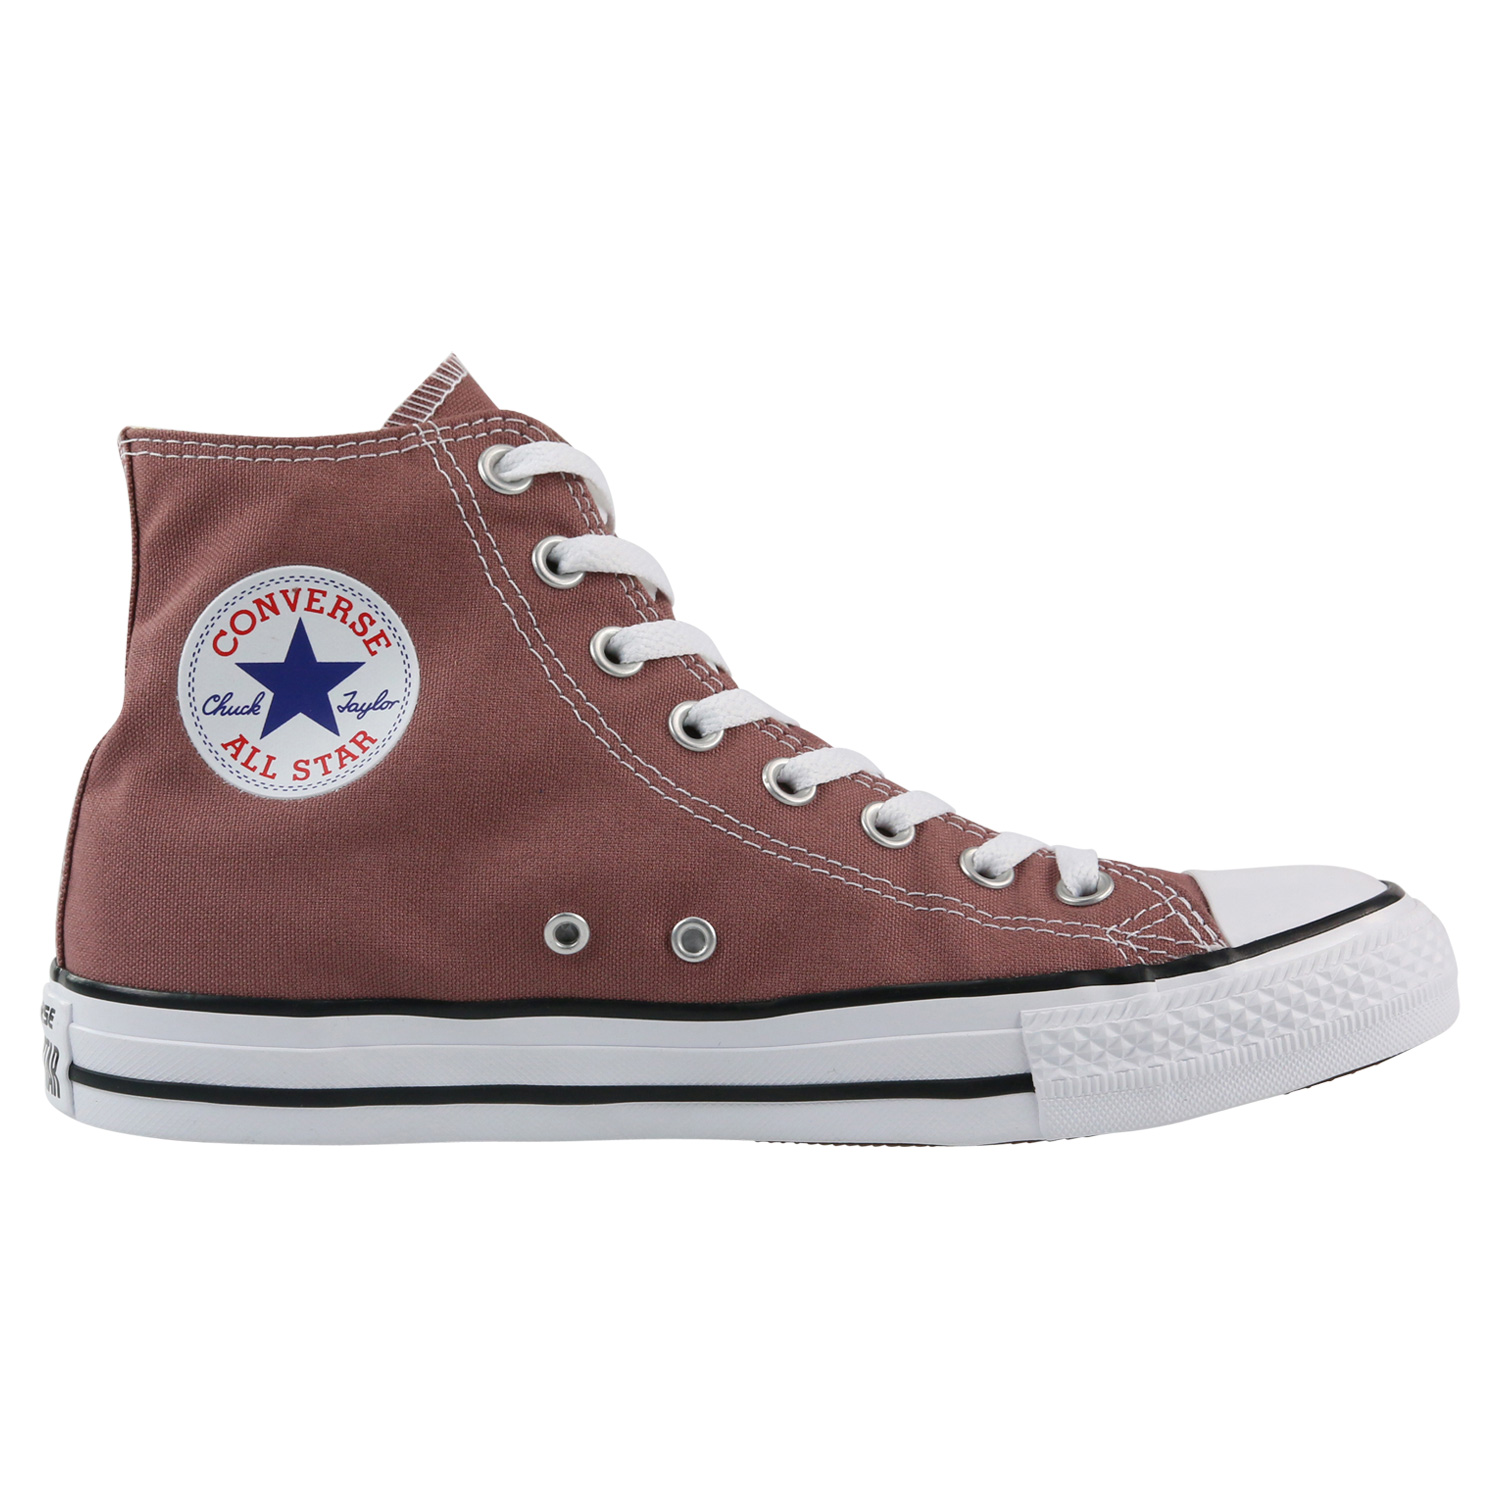 Converse Chucks 159563c Marrone Rosso Chuck Taylor All Star Hi SADDLE